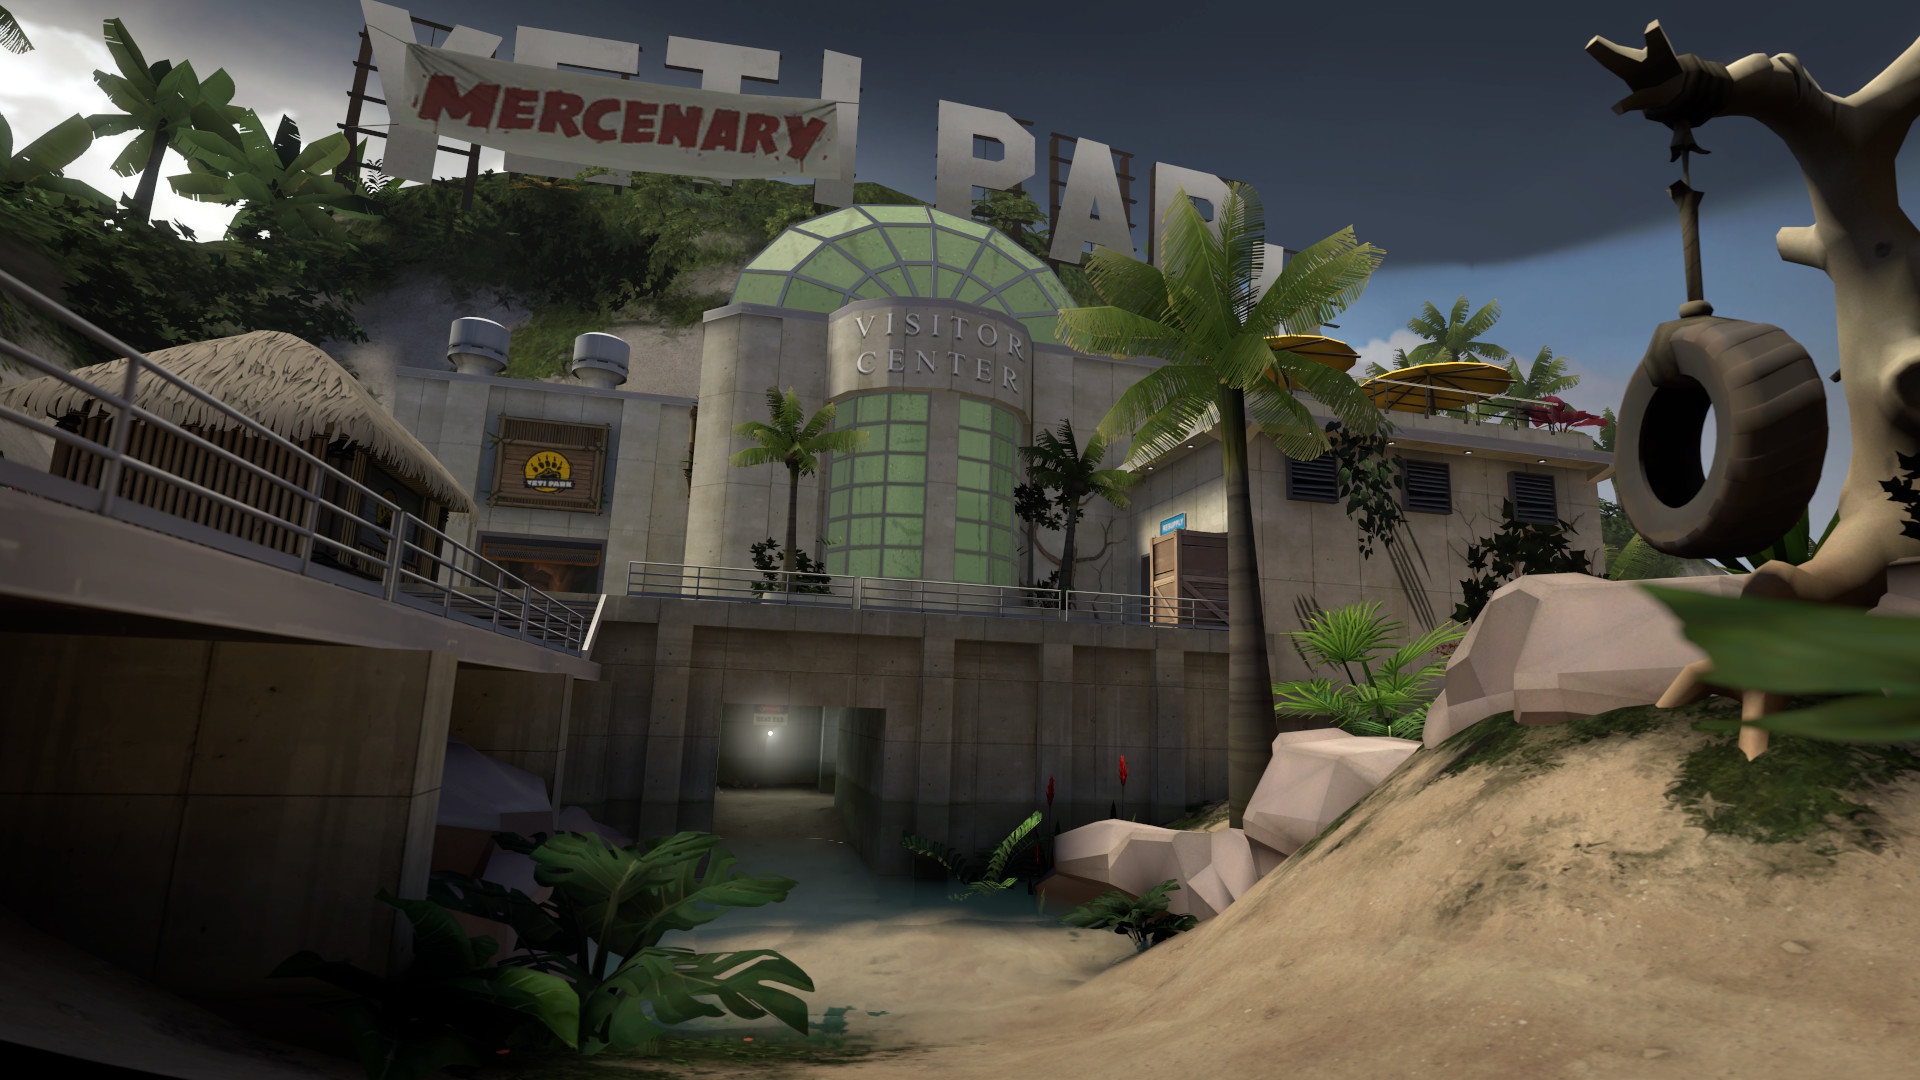 Image result for mercenary park 1920x1080